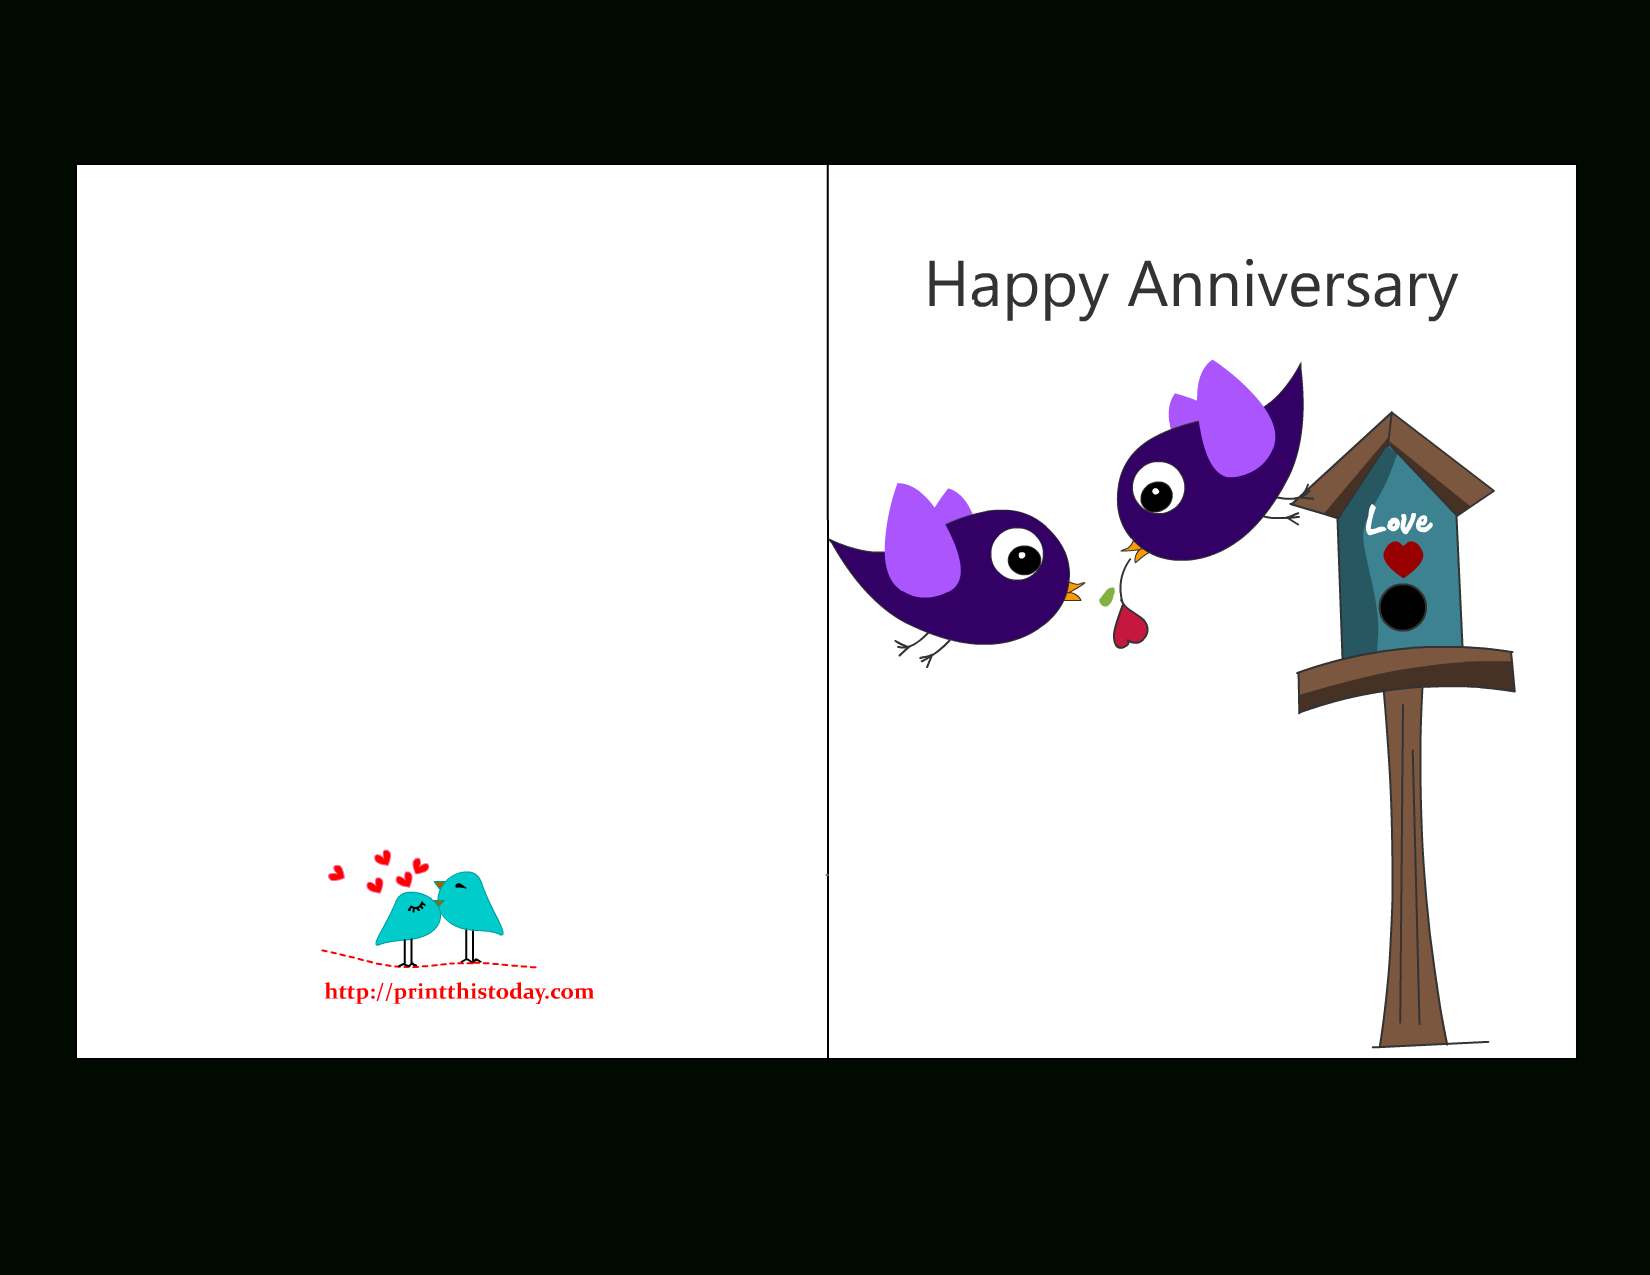 Free Anniversary Cards To Print | Free Printable Anniversary Cards - Free Printable Anniversary Cards